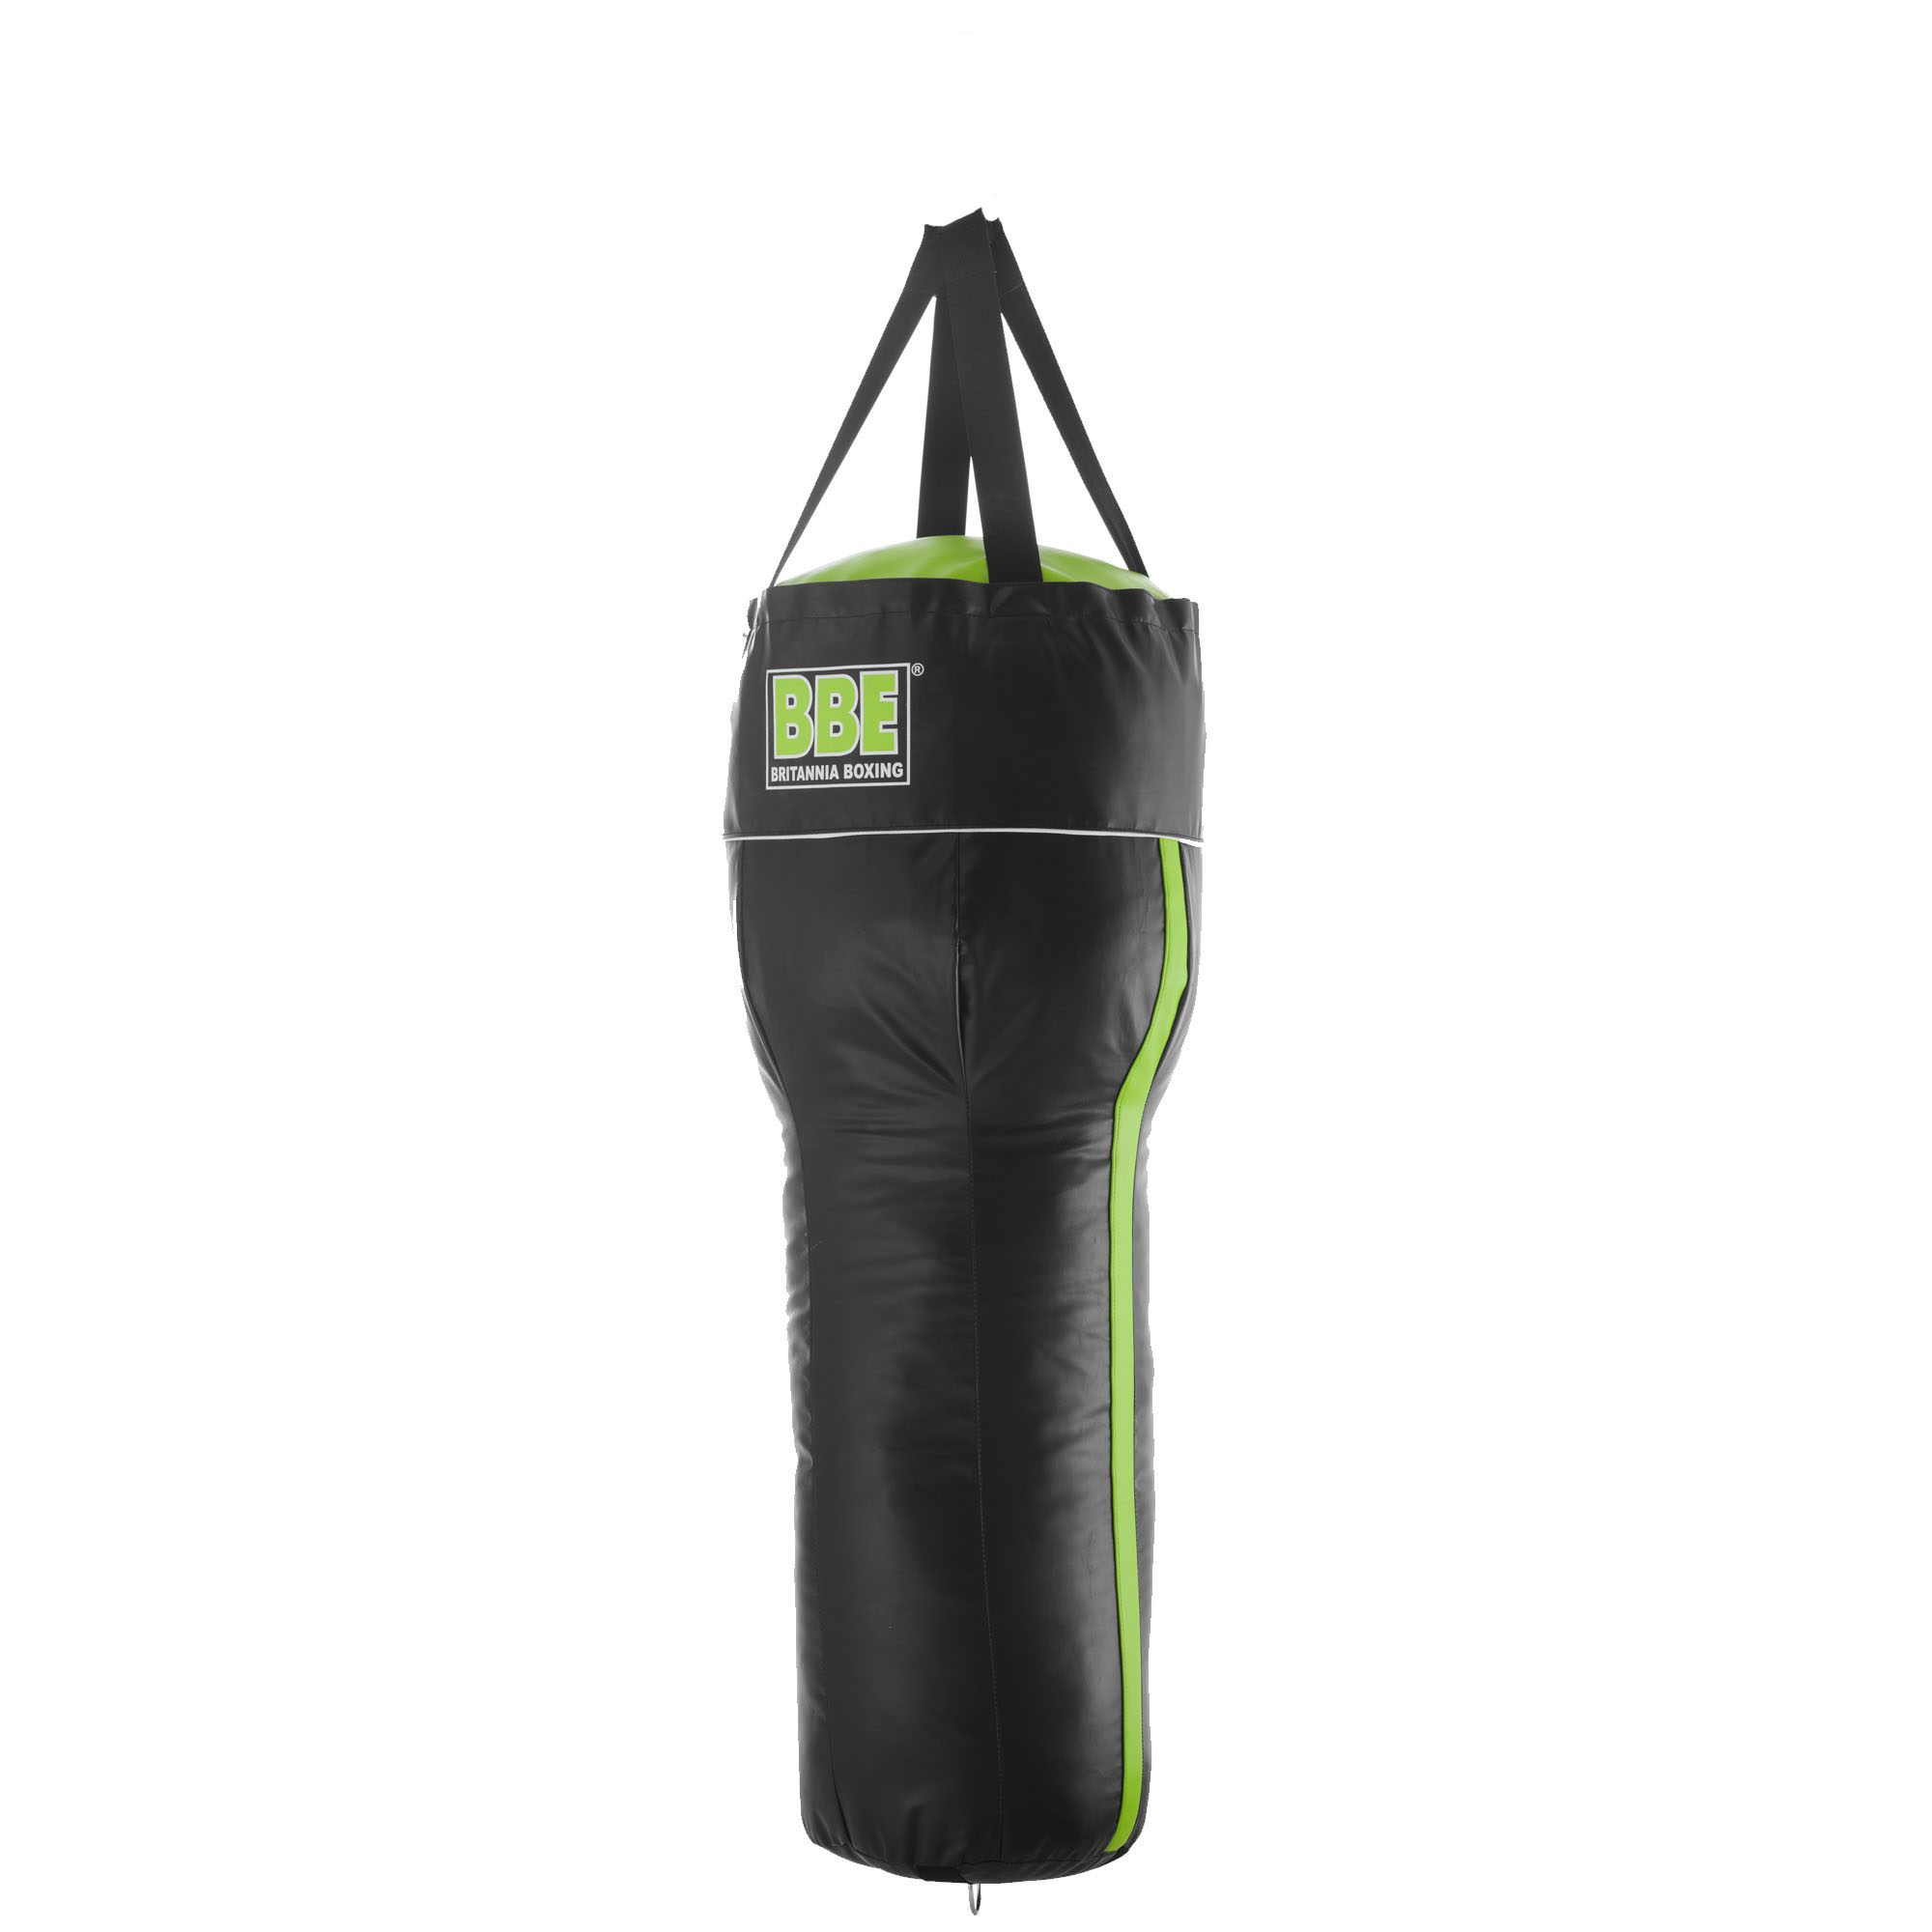 BBE 4ft Tethered Uppercut Punch Bag